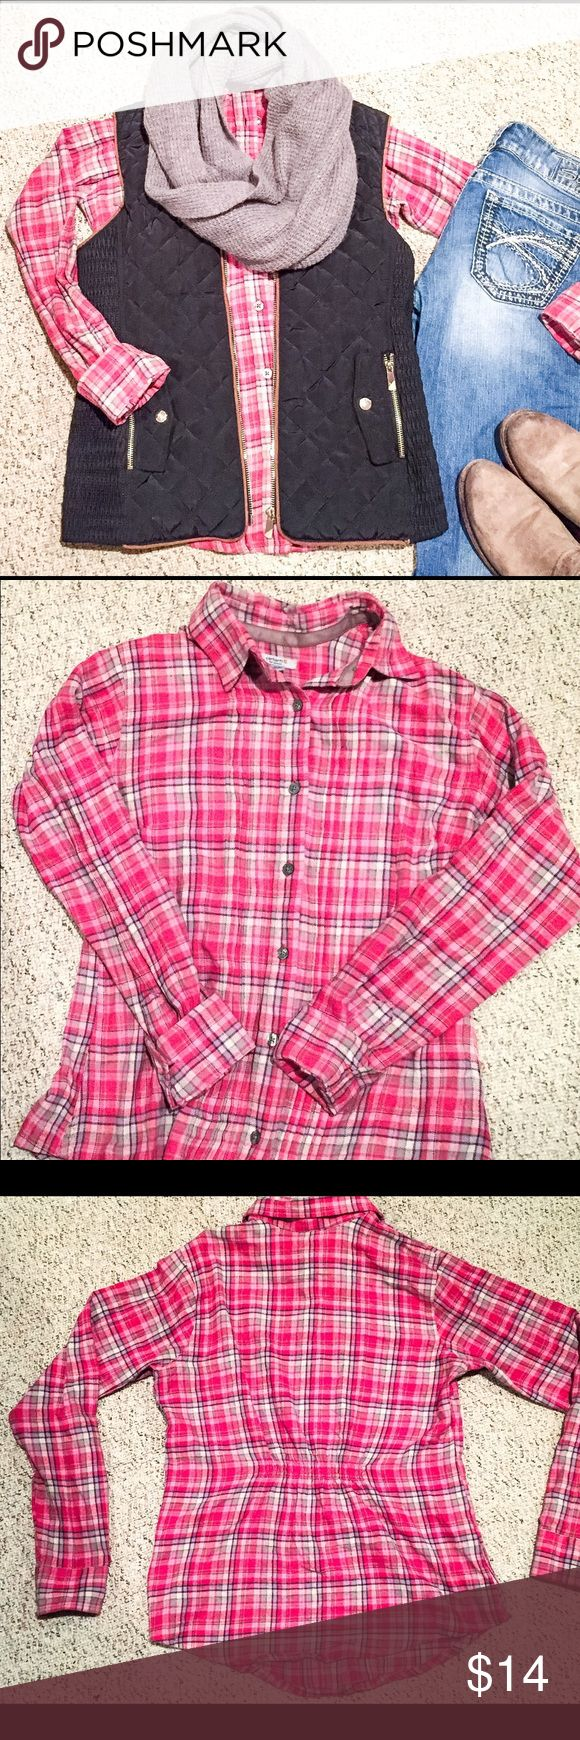 Carhartt Flannel Carhartt Flannel• 100% Cotton• SO Soft & Cozy• Gently Used• Size Small Carhartt Tops